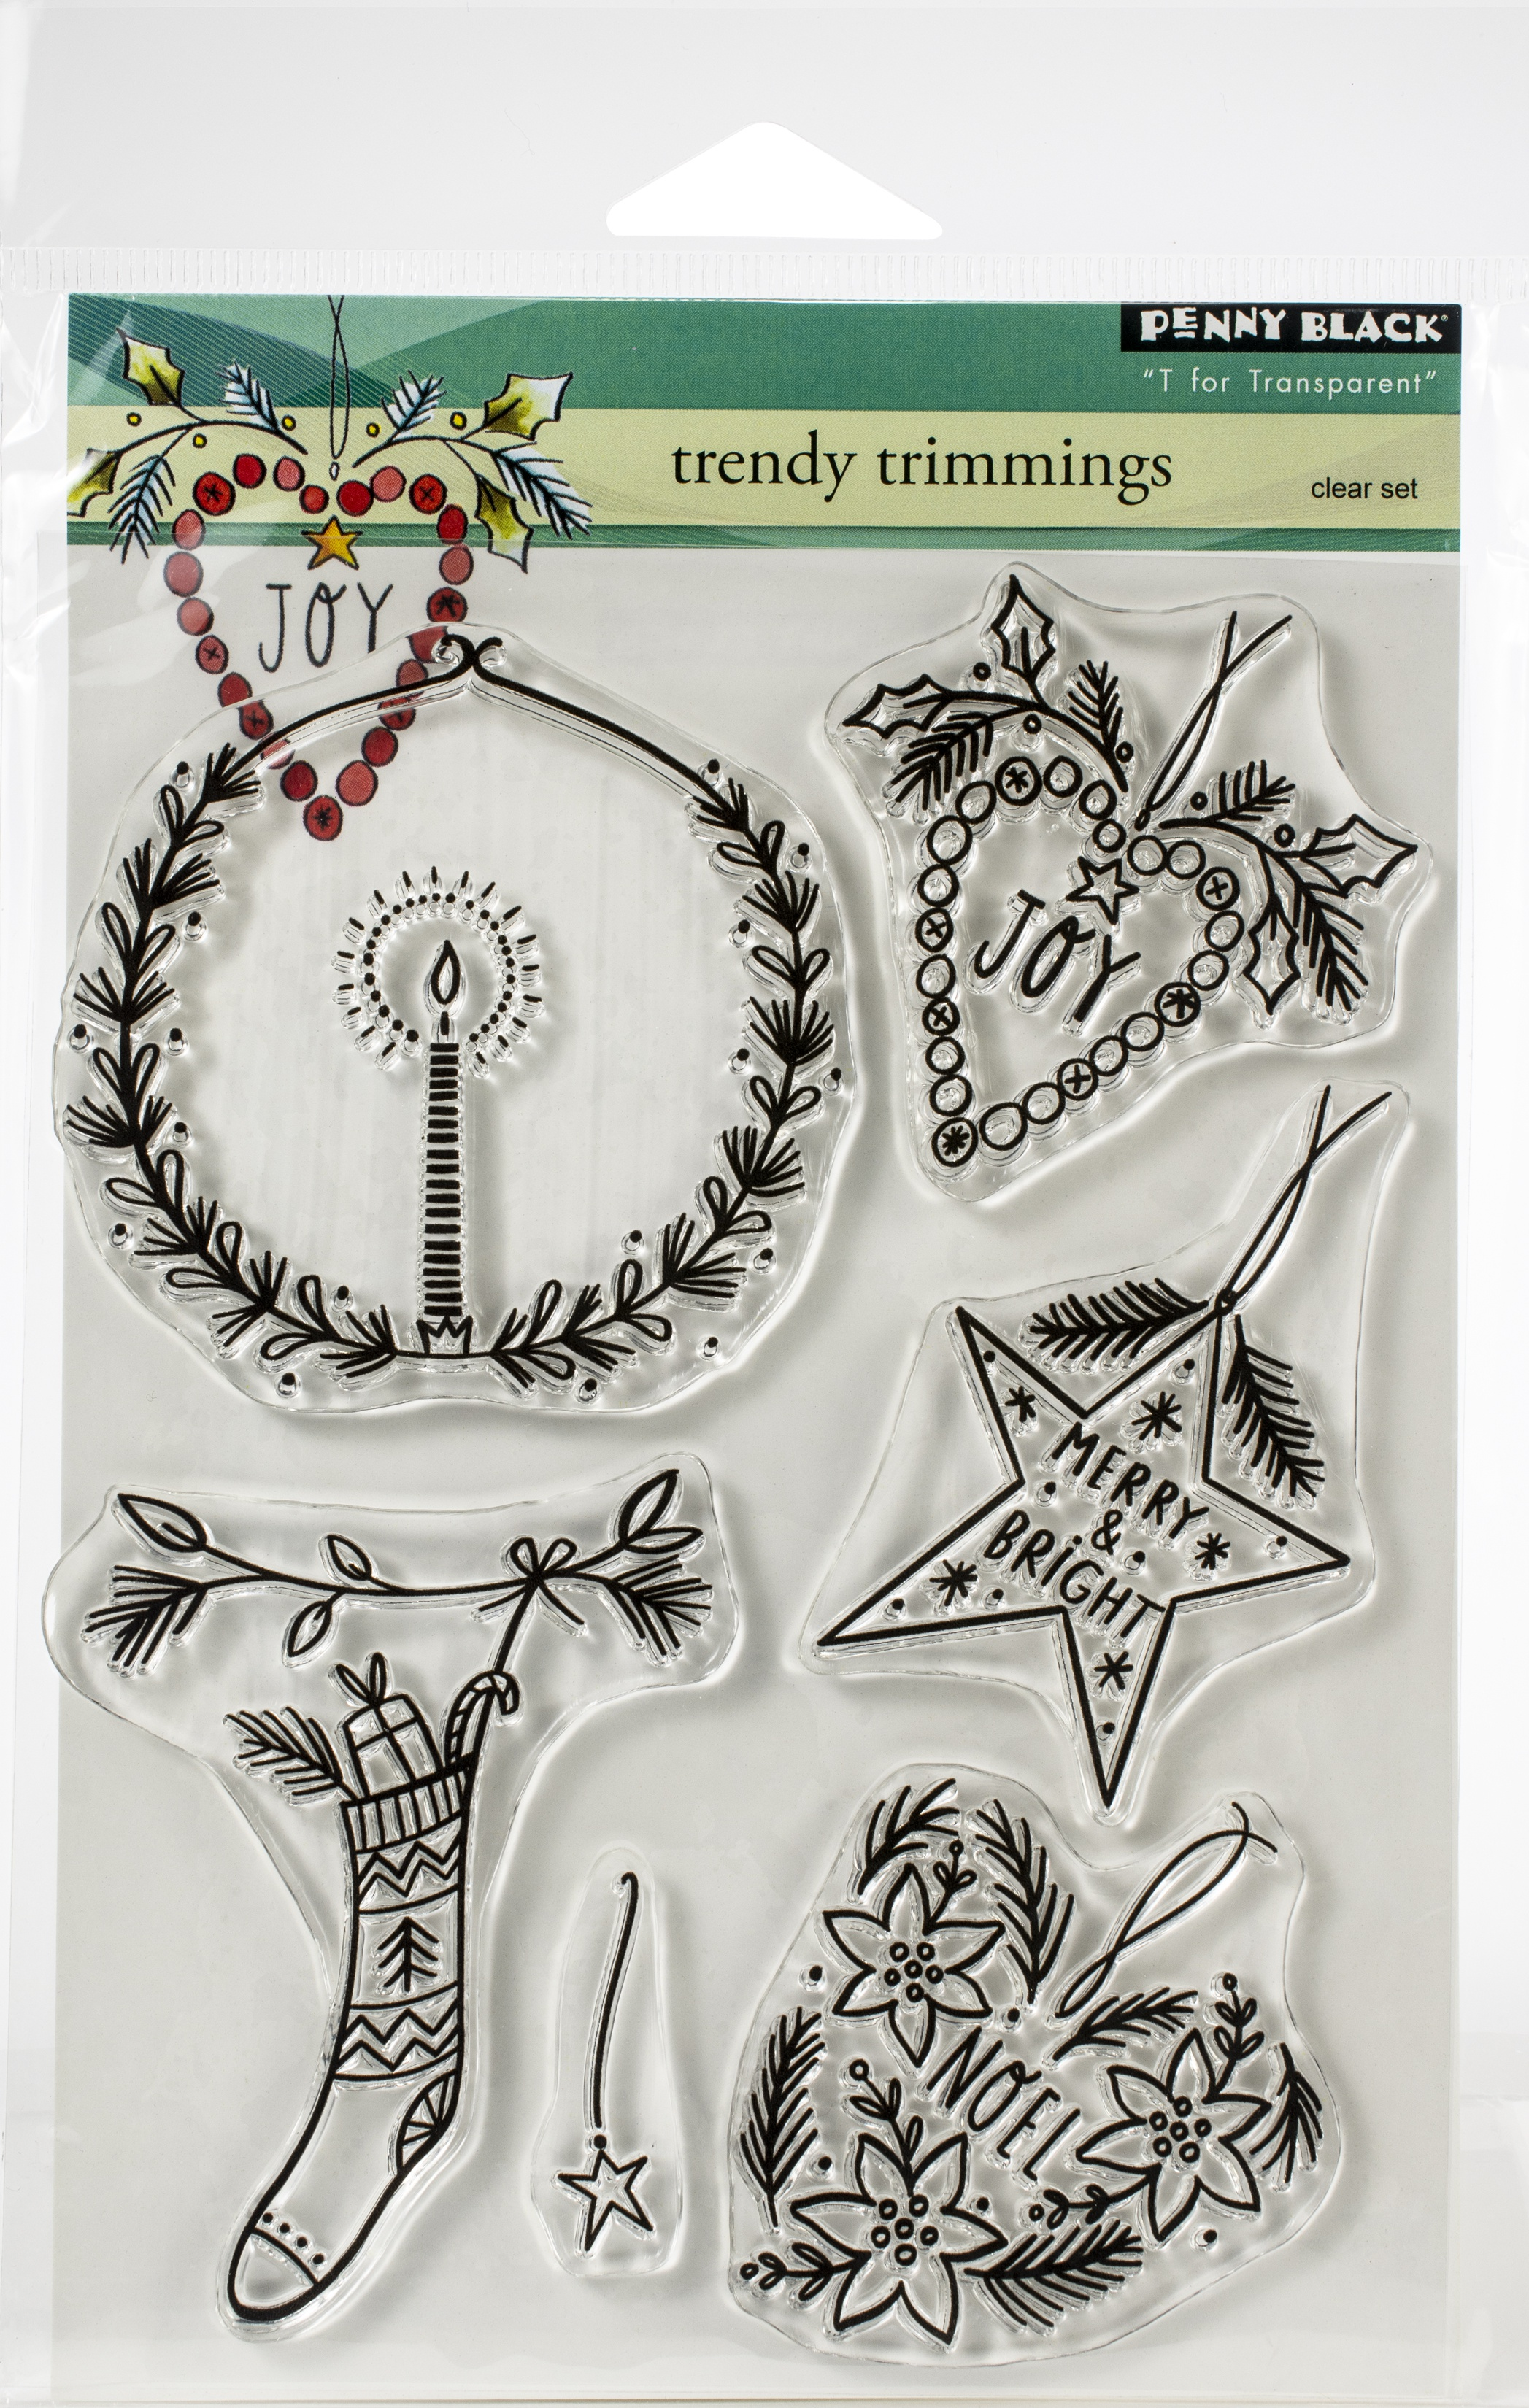 Penny Black Clear Stamps-Trendy Trimmings 5X6.5